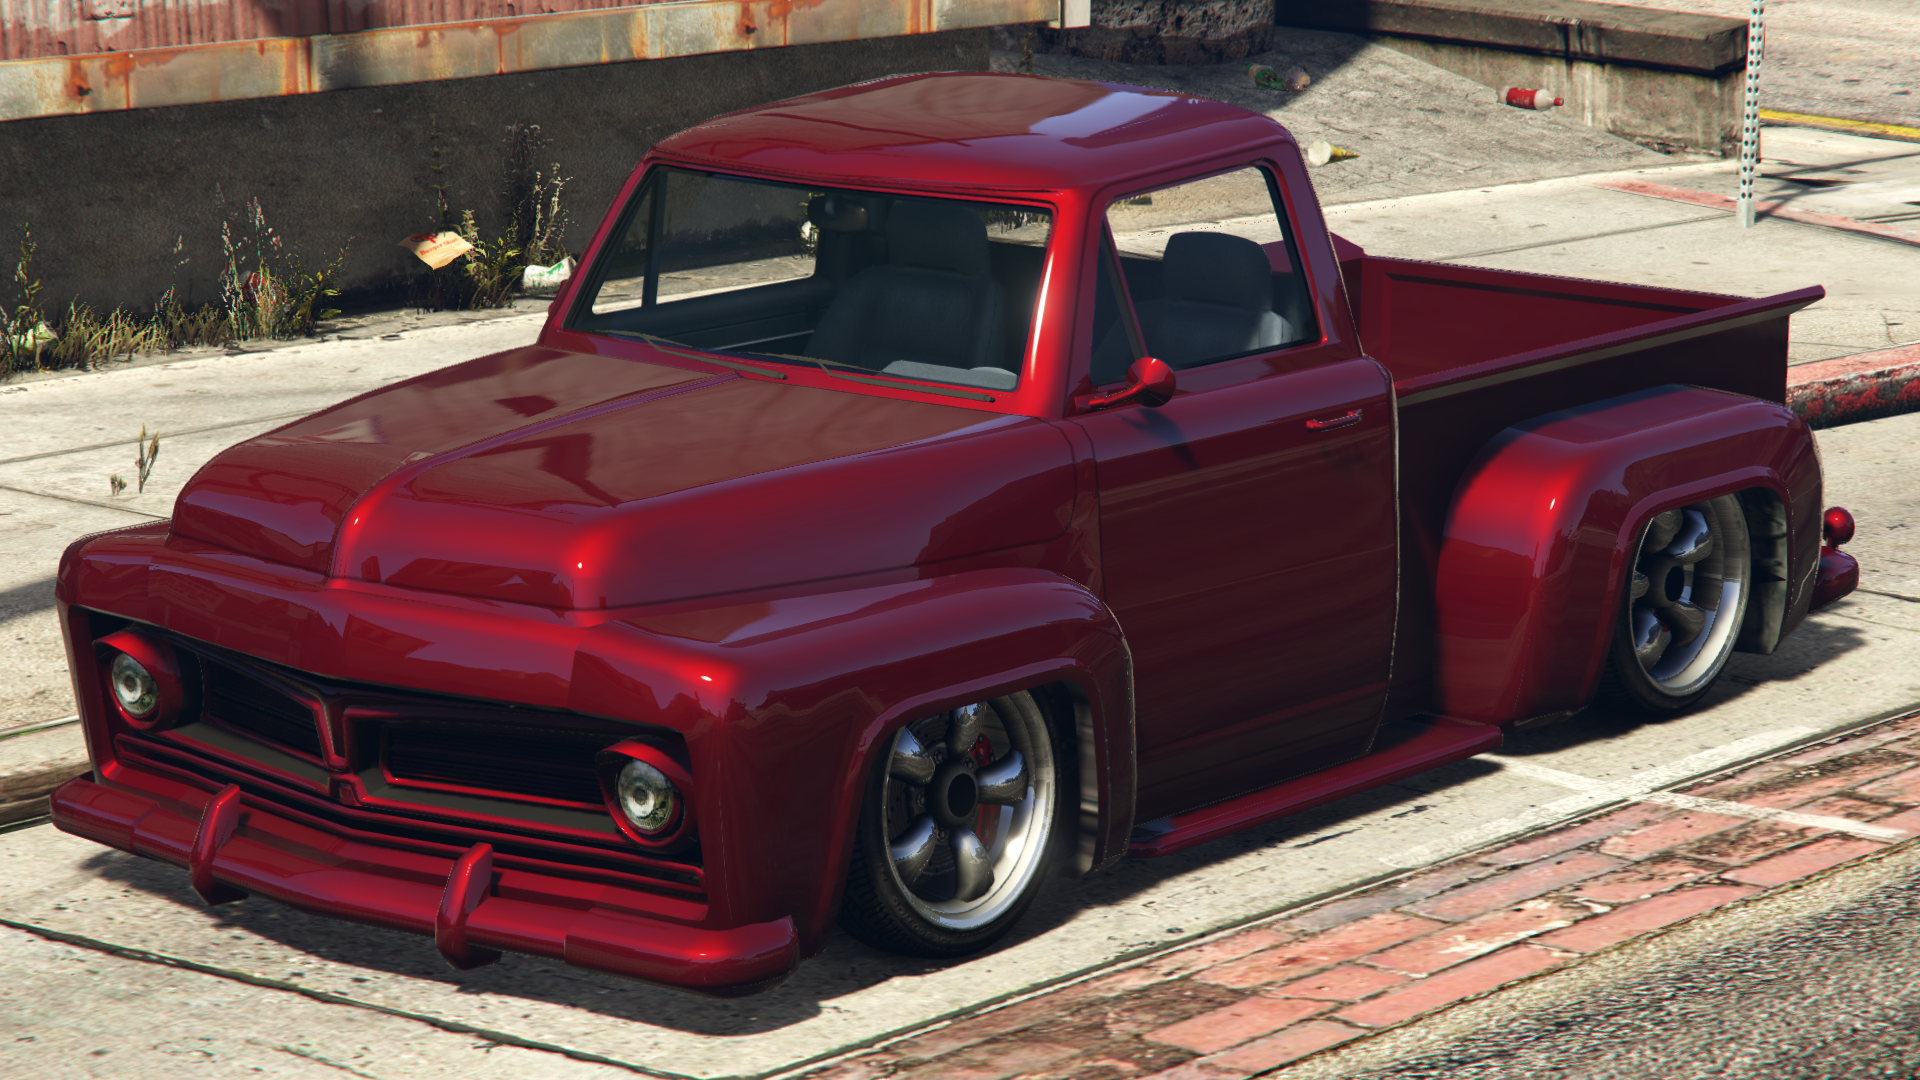 Slamvan Custom Gta Wiki Fandom Powered By Wikia